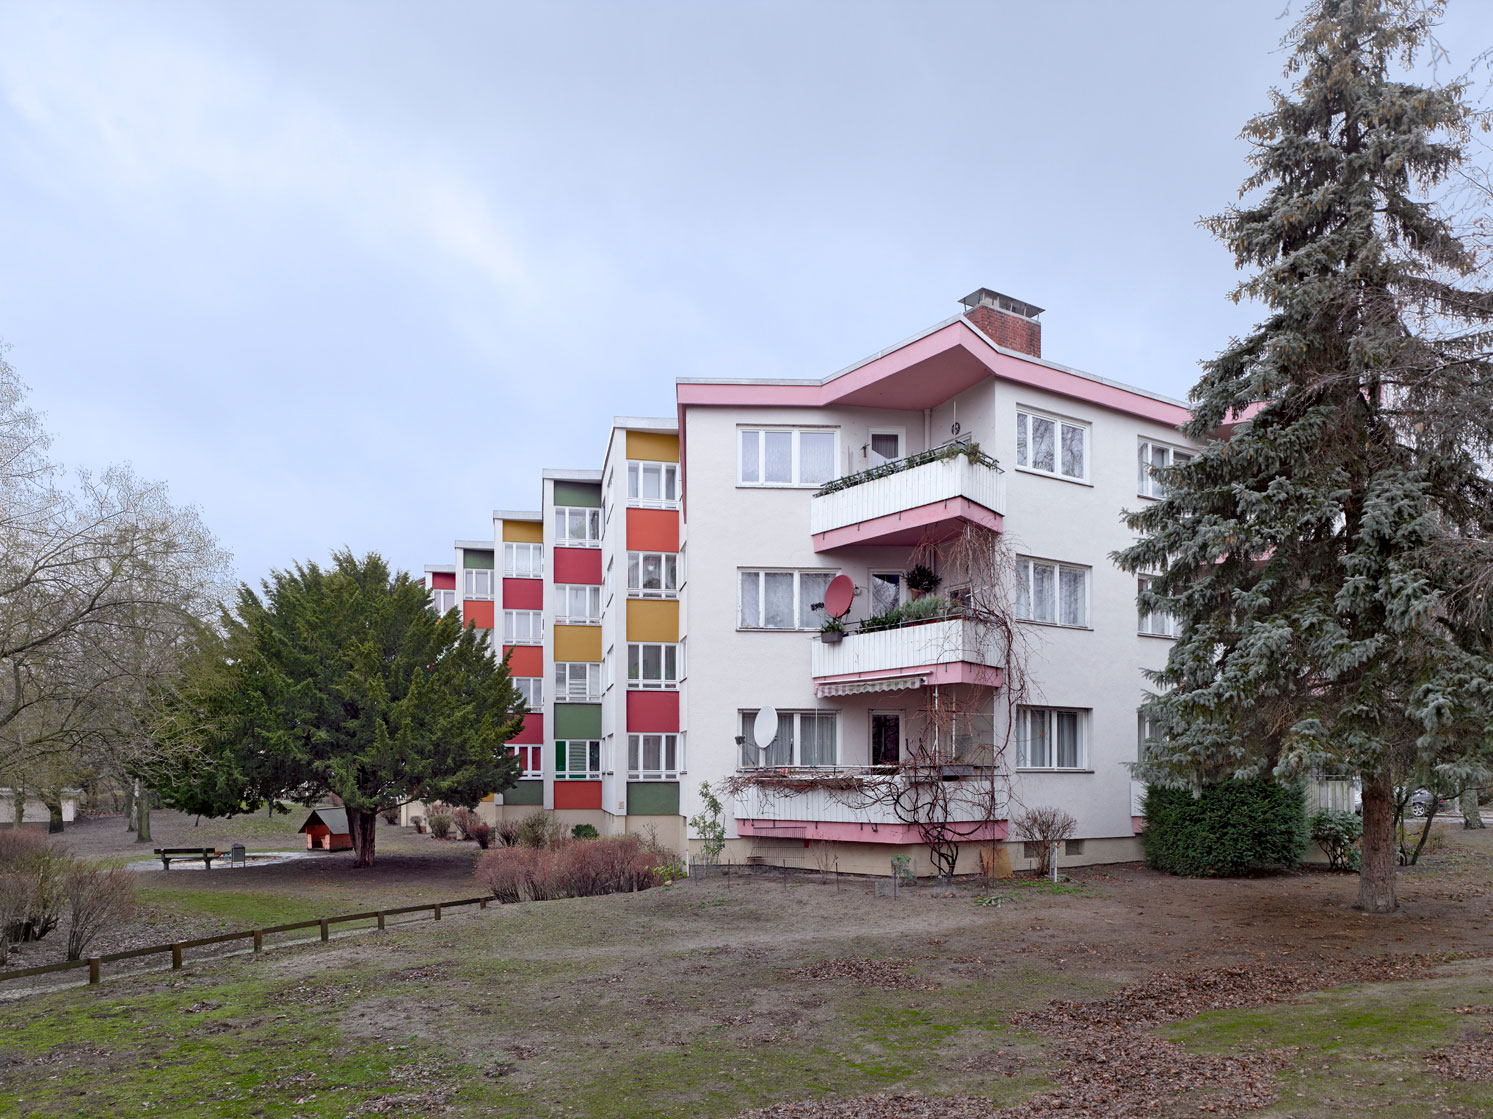 Siemensstadt Housing Estate, 1929-34 - Berlin, Germany